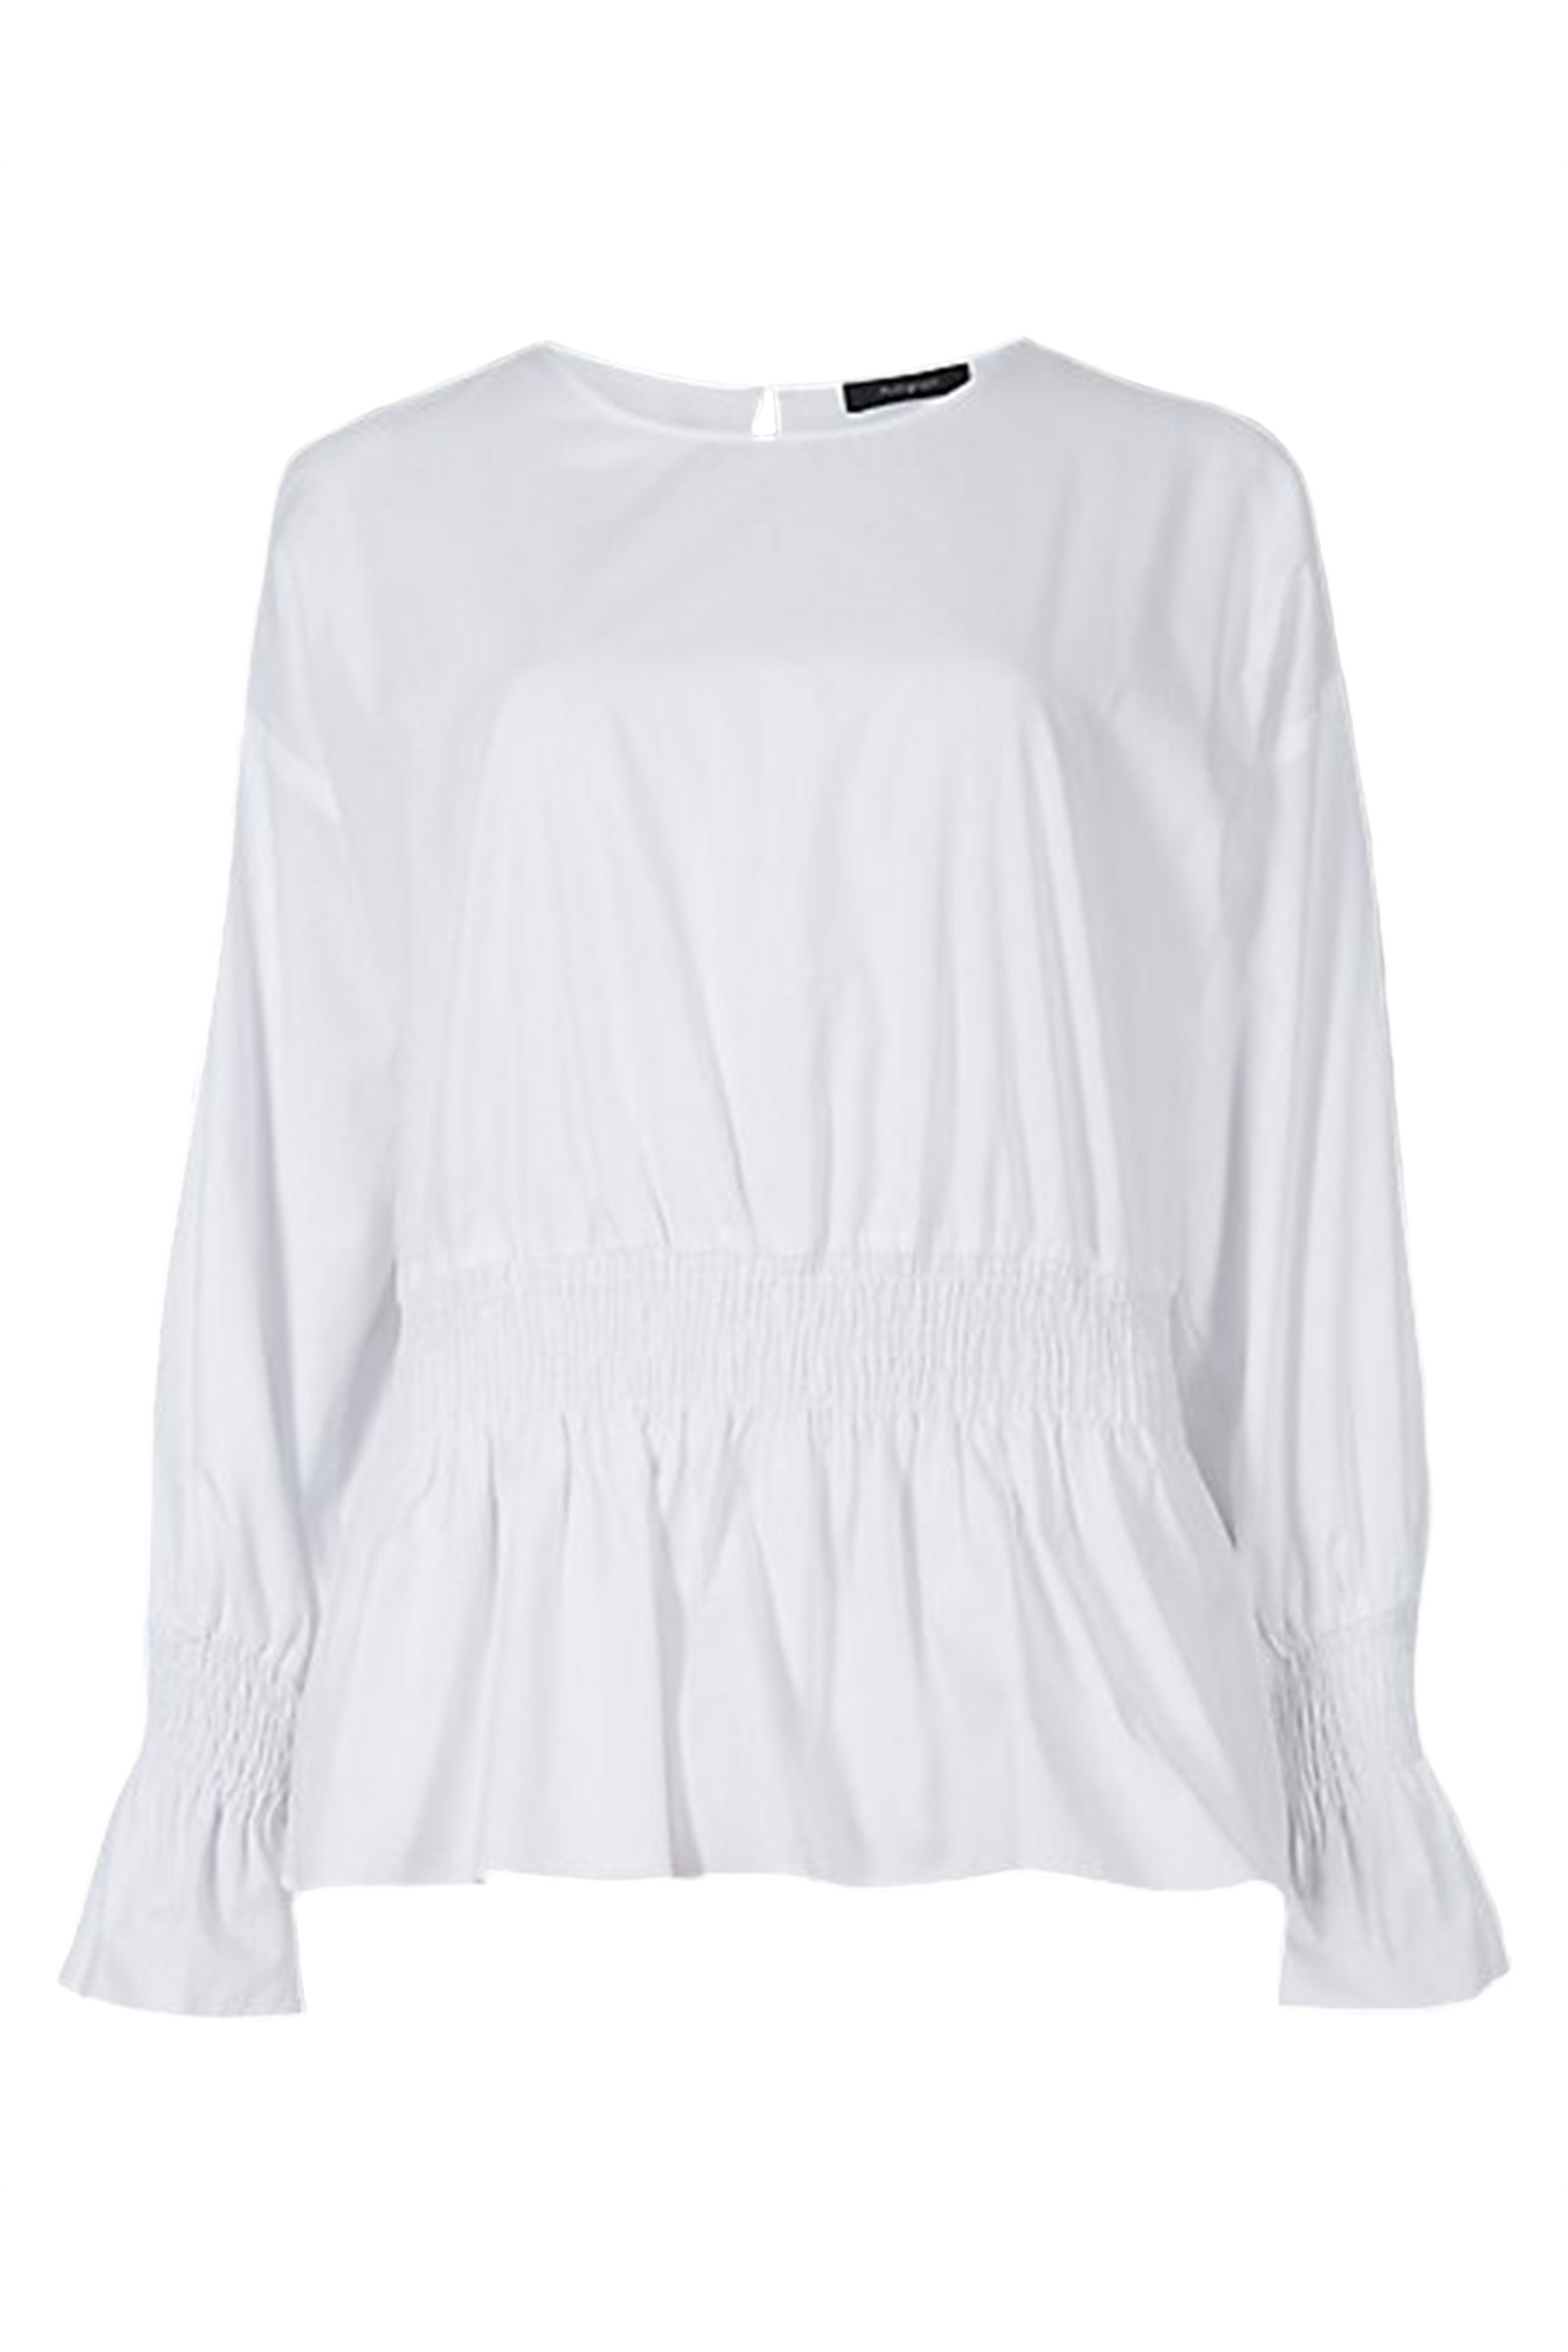 Click to Buy Marks & Spencer Cotton Blouse